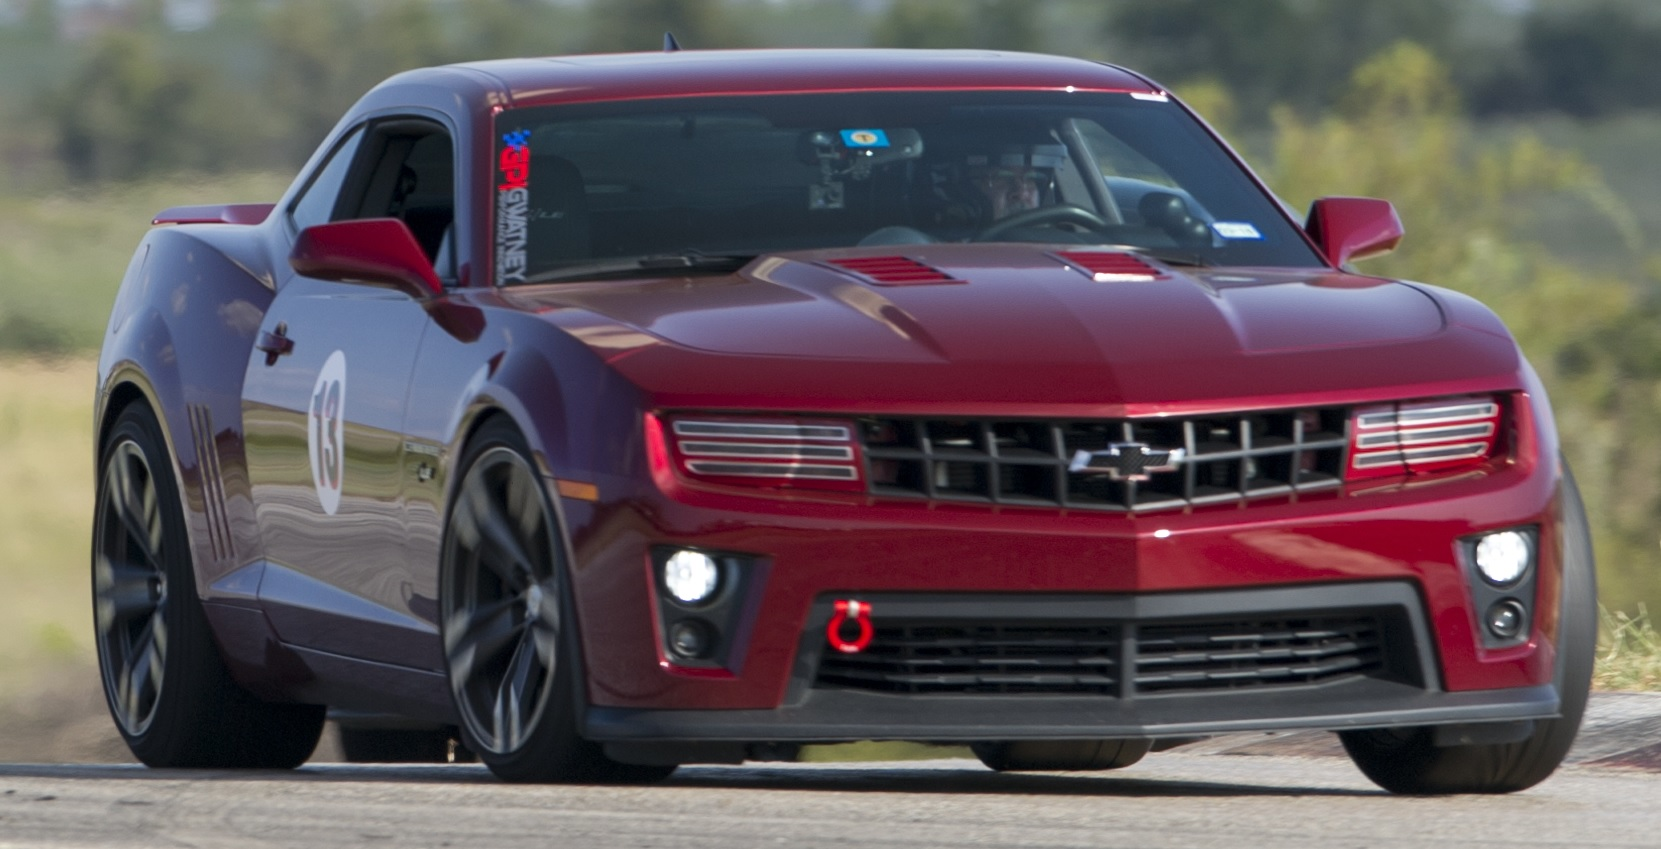 The Chevrolet Camaro Is An American Automobile Manufactured By Chevrolet Classified As A Pony Car And Some Versions Also As A Muscle Car It Went On Sale On